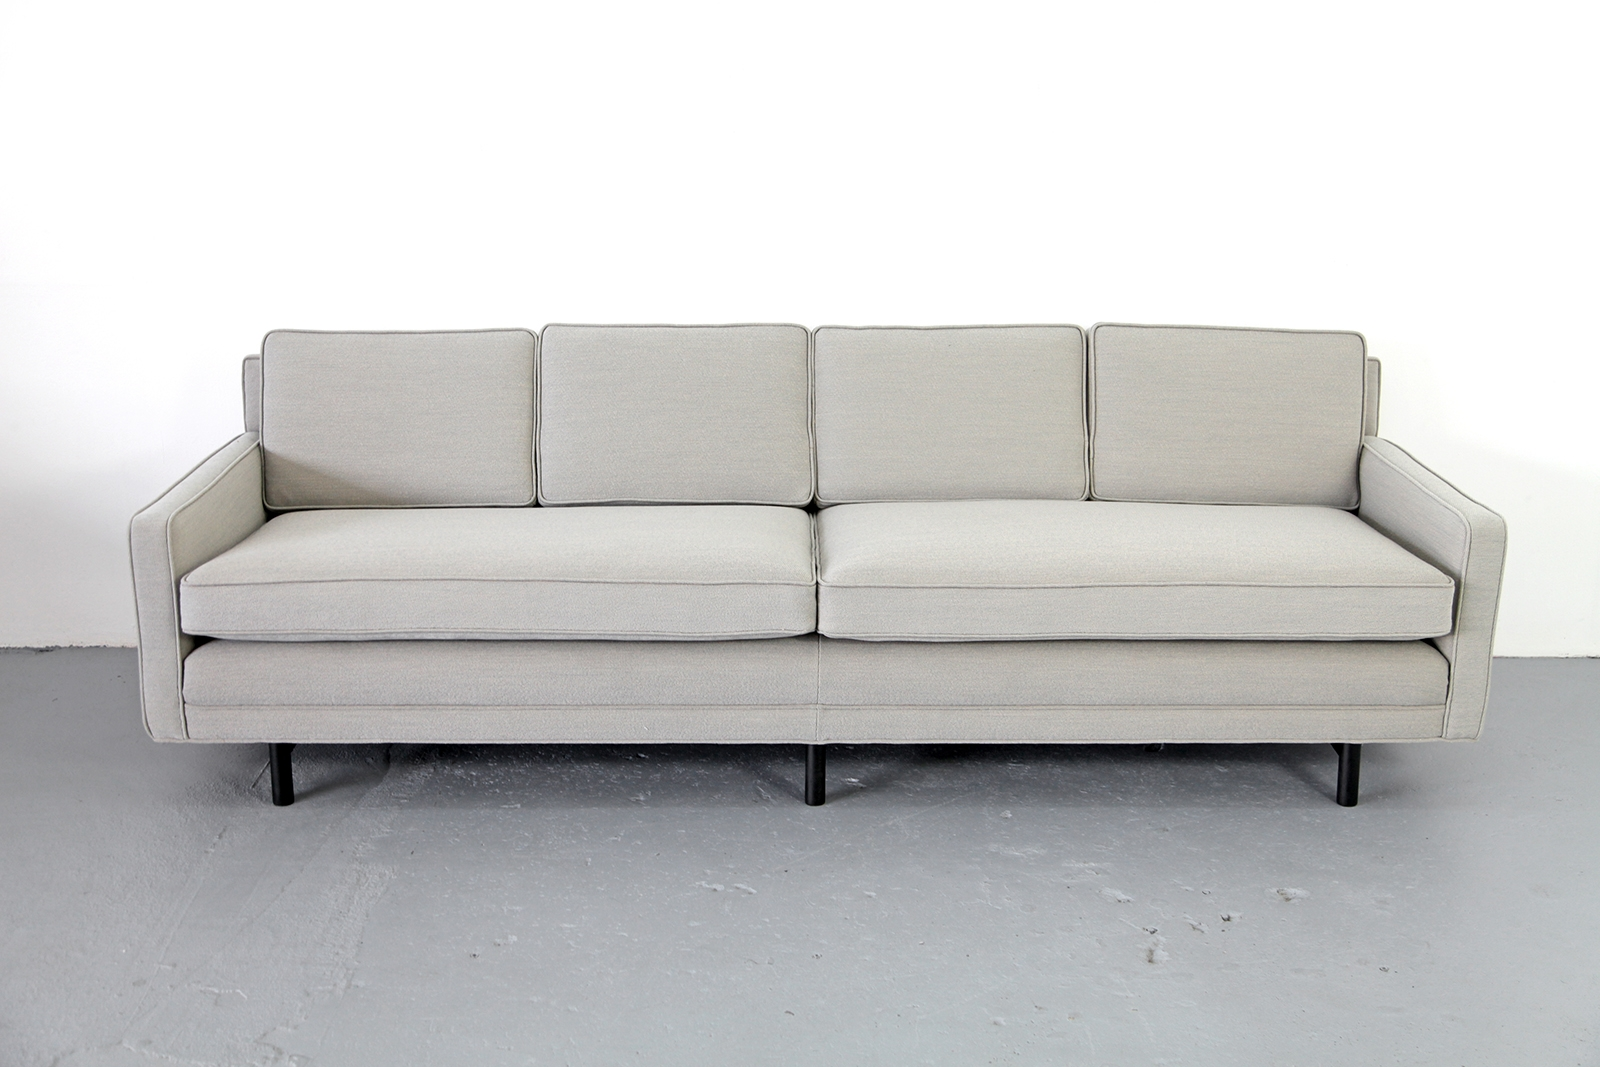 4 Seater Sofa Paul Mccobb For Directional For Sale At Pamono Within Four Seat Sofas (Image 2 of 15)